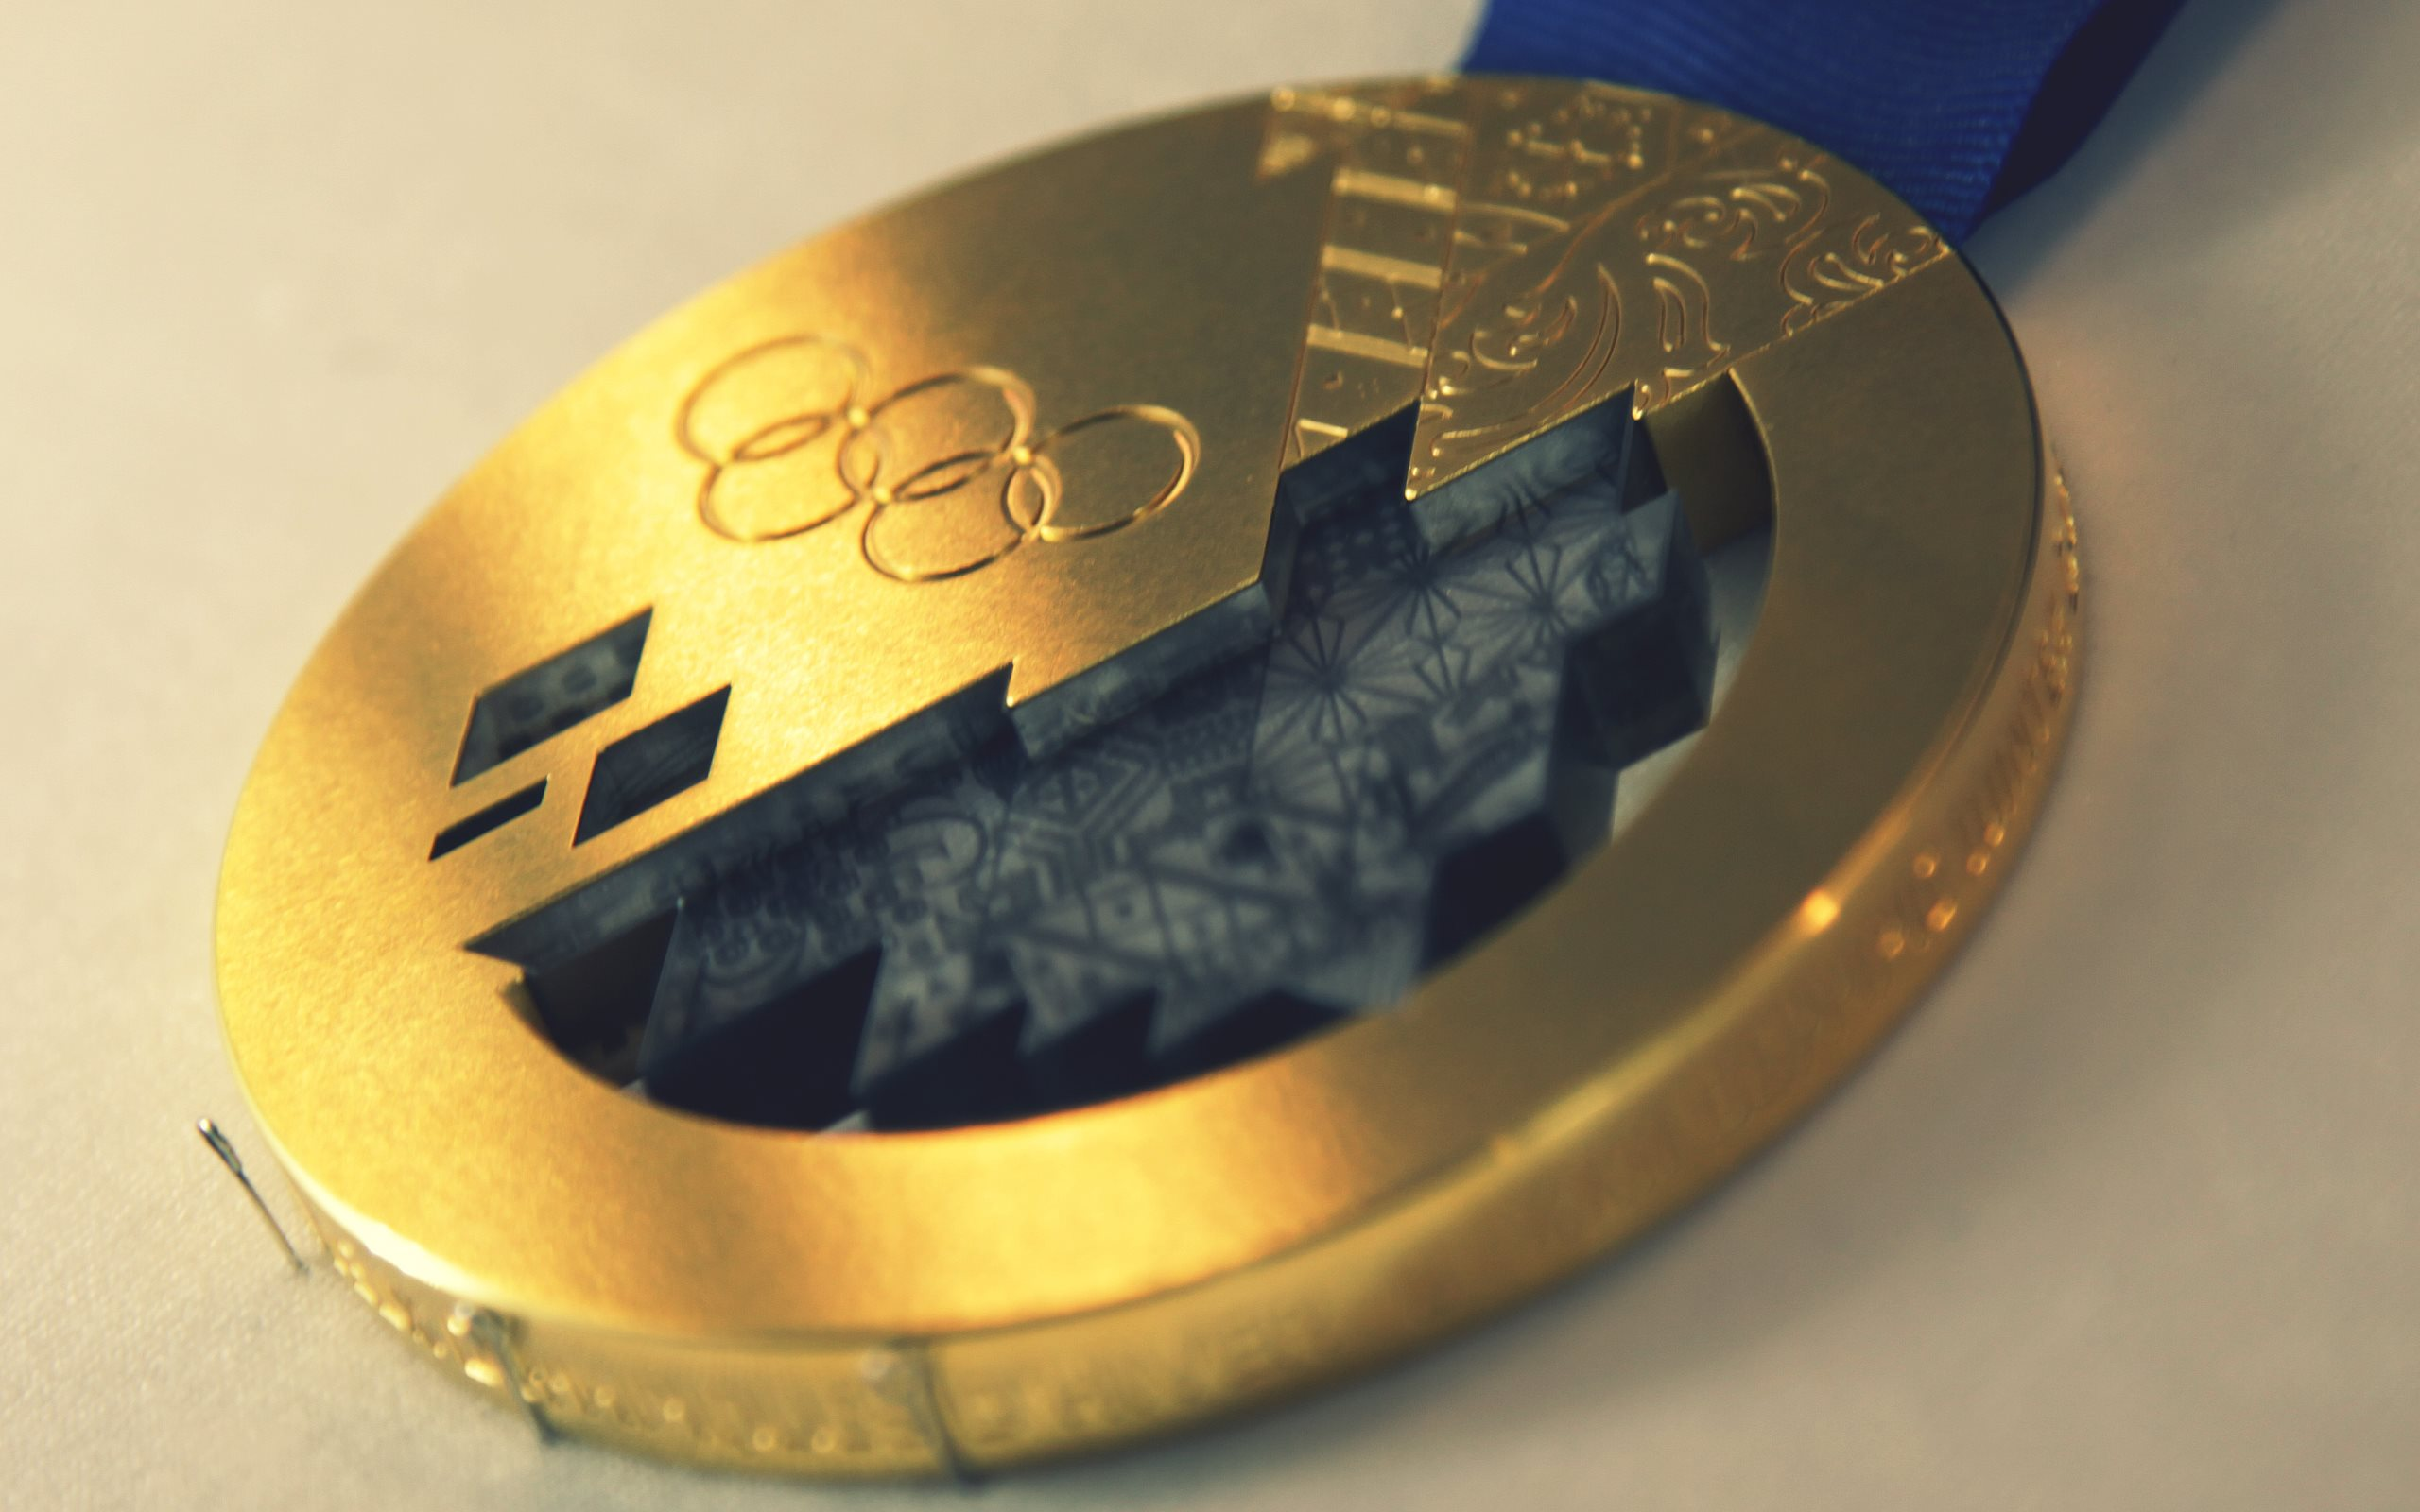 Sochi 2014 Olympic Winter Games Gold Medal